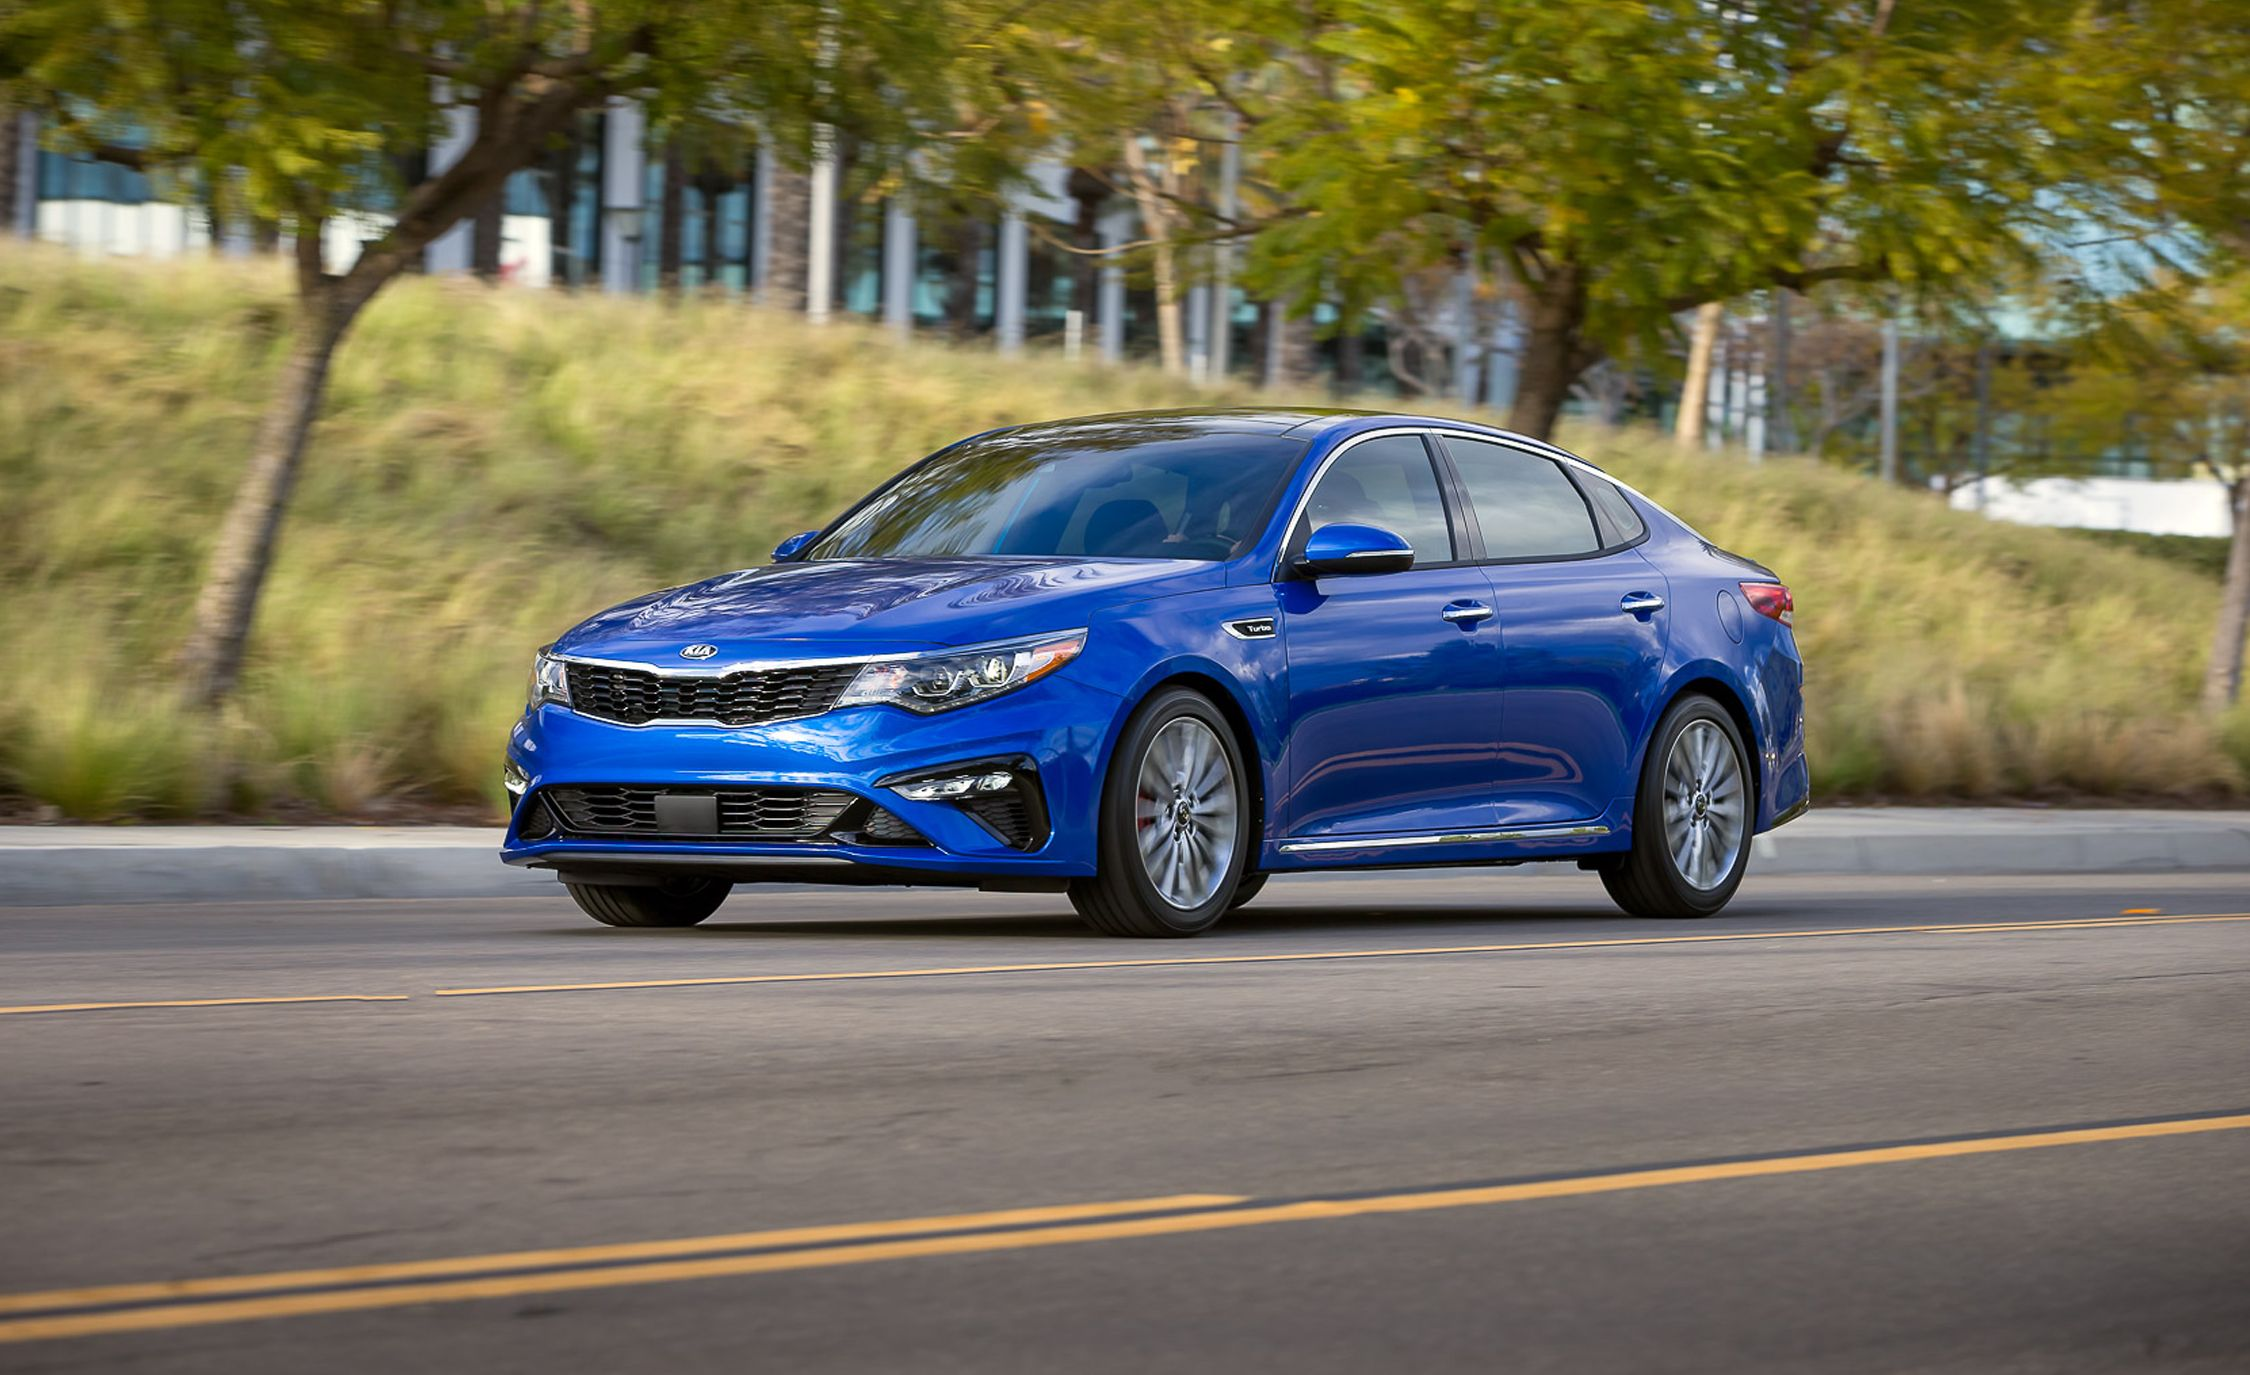 2019 Kia Optima: Slim and Trim Changes